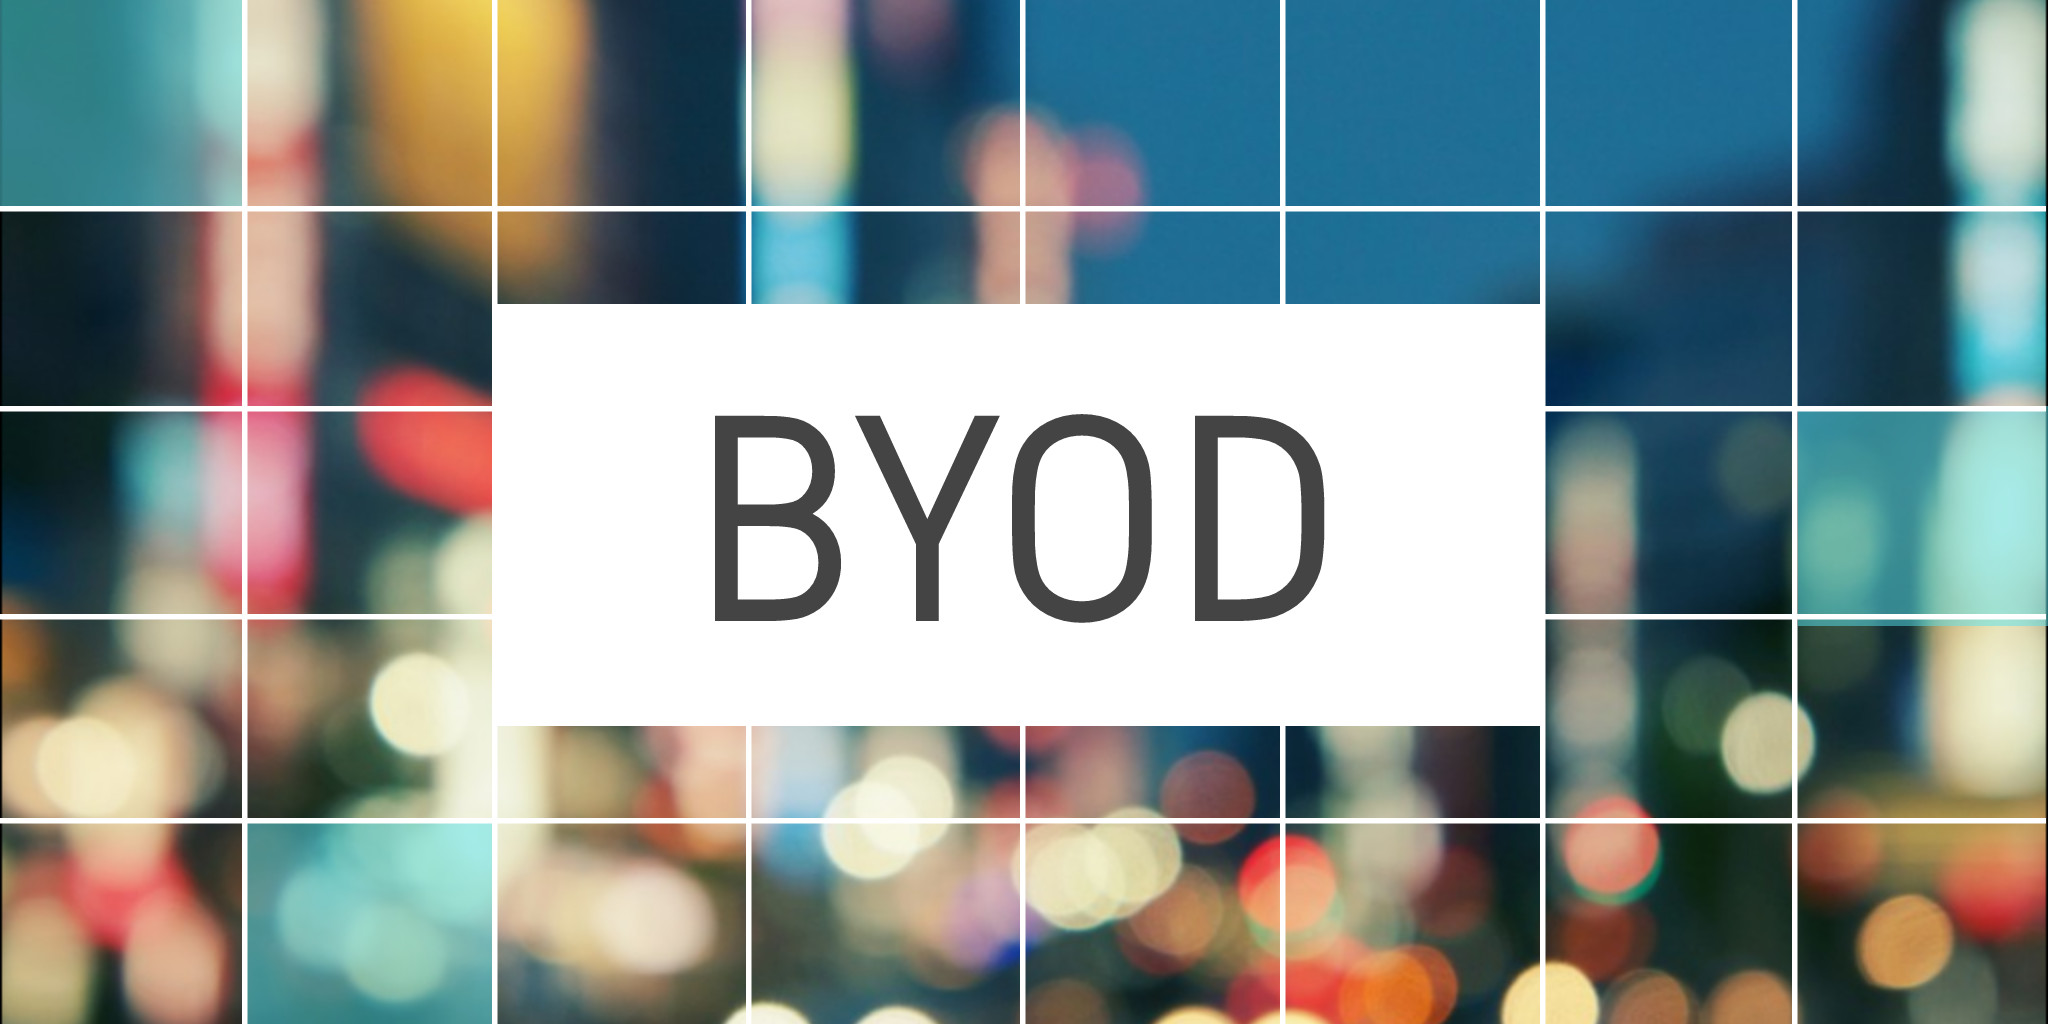 Organizations ill-equipped to deal with growing BYOD security threats